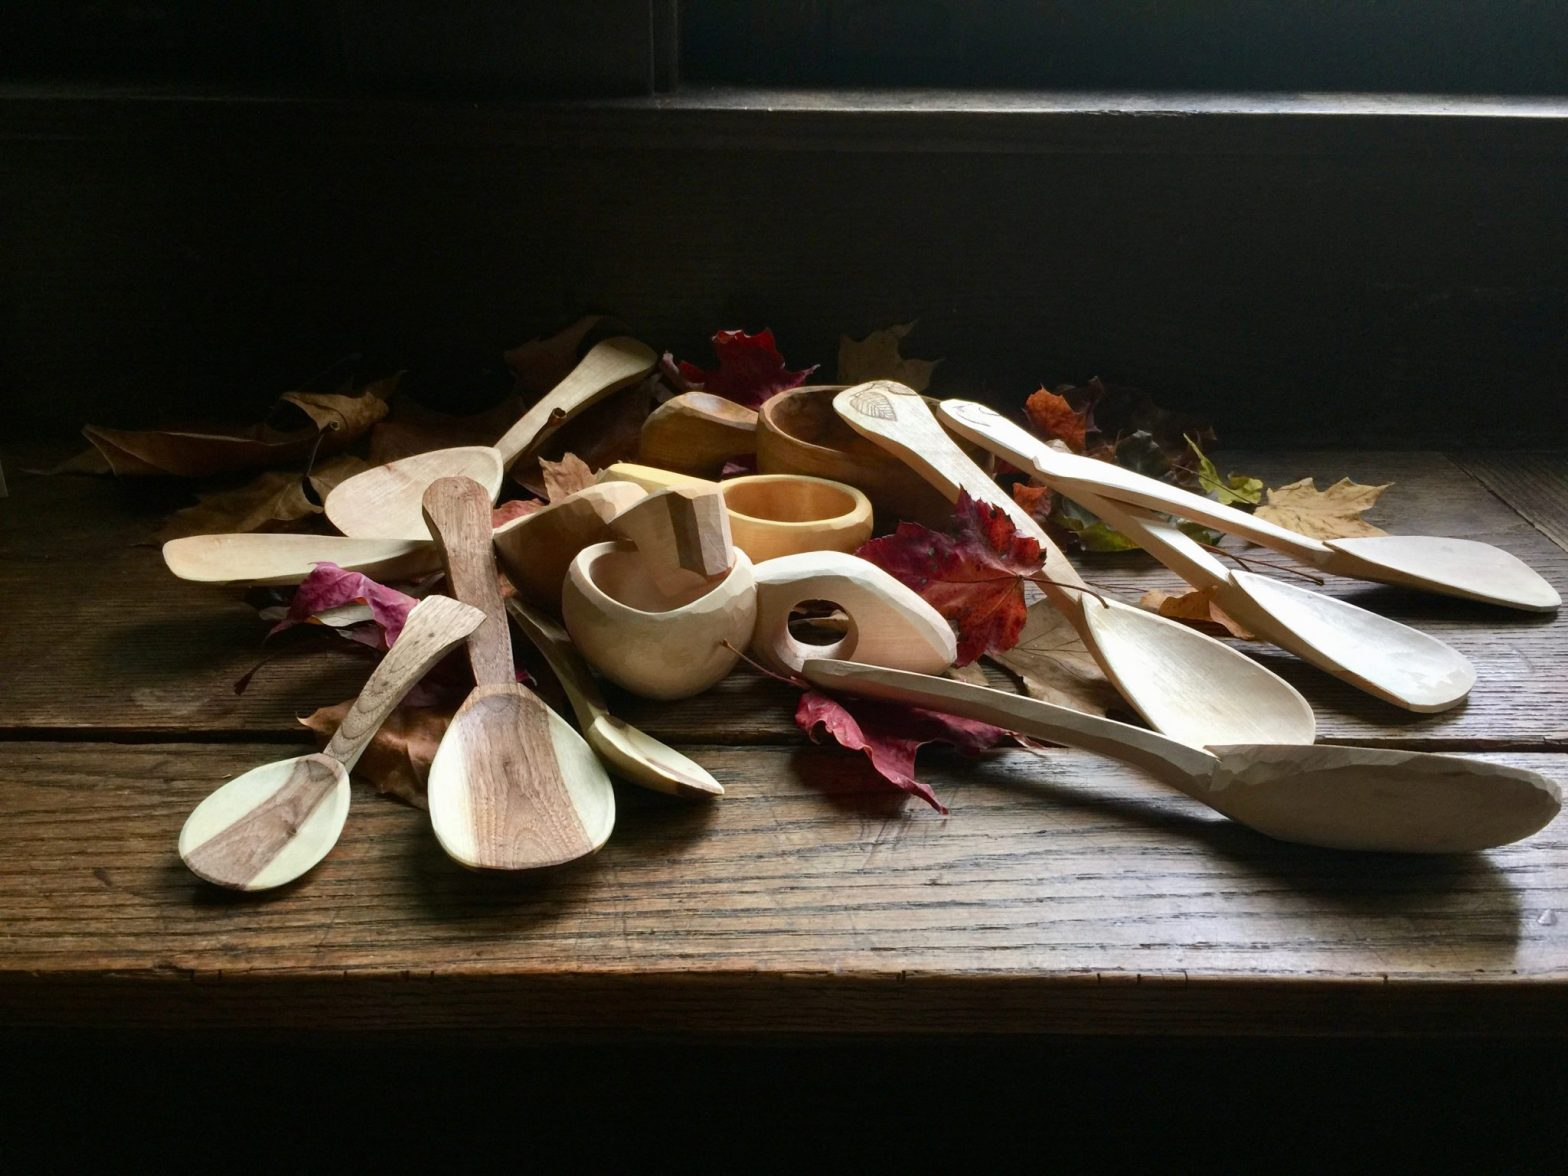 a bunch of decent spoons and cups